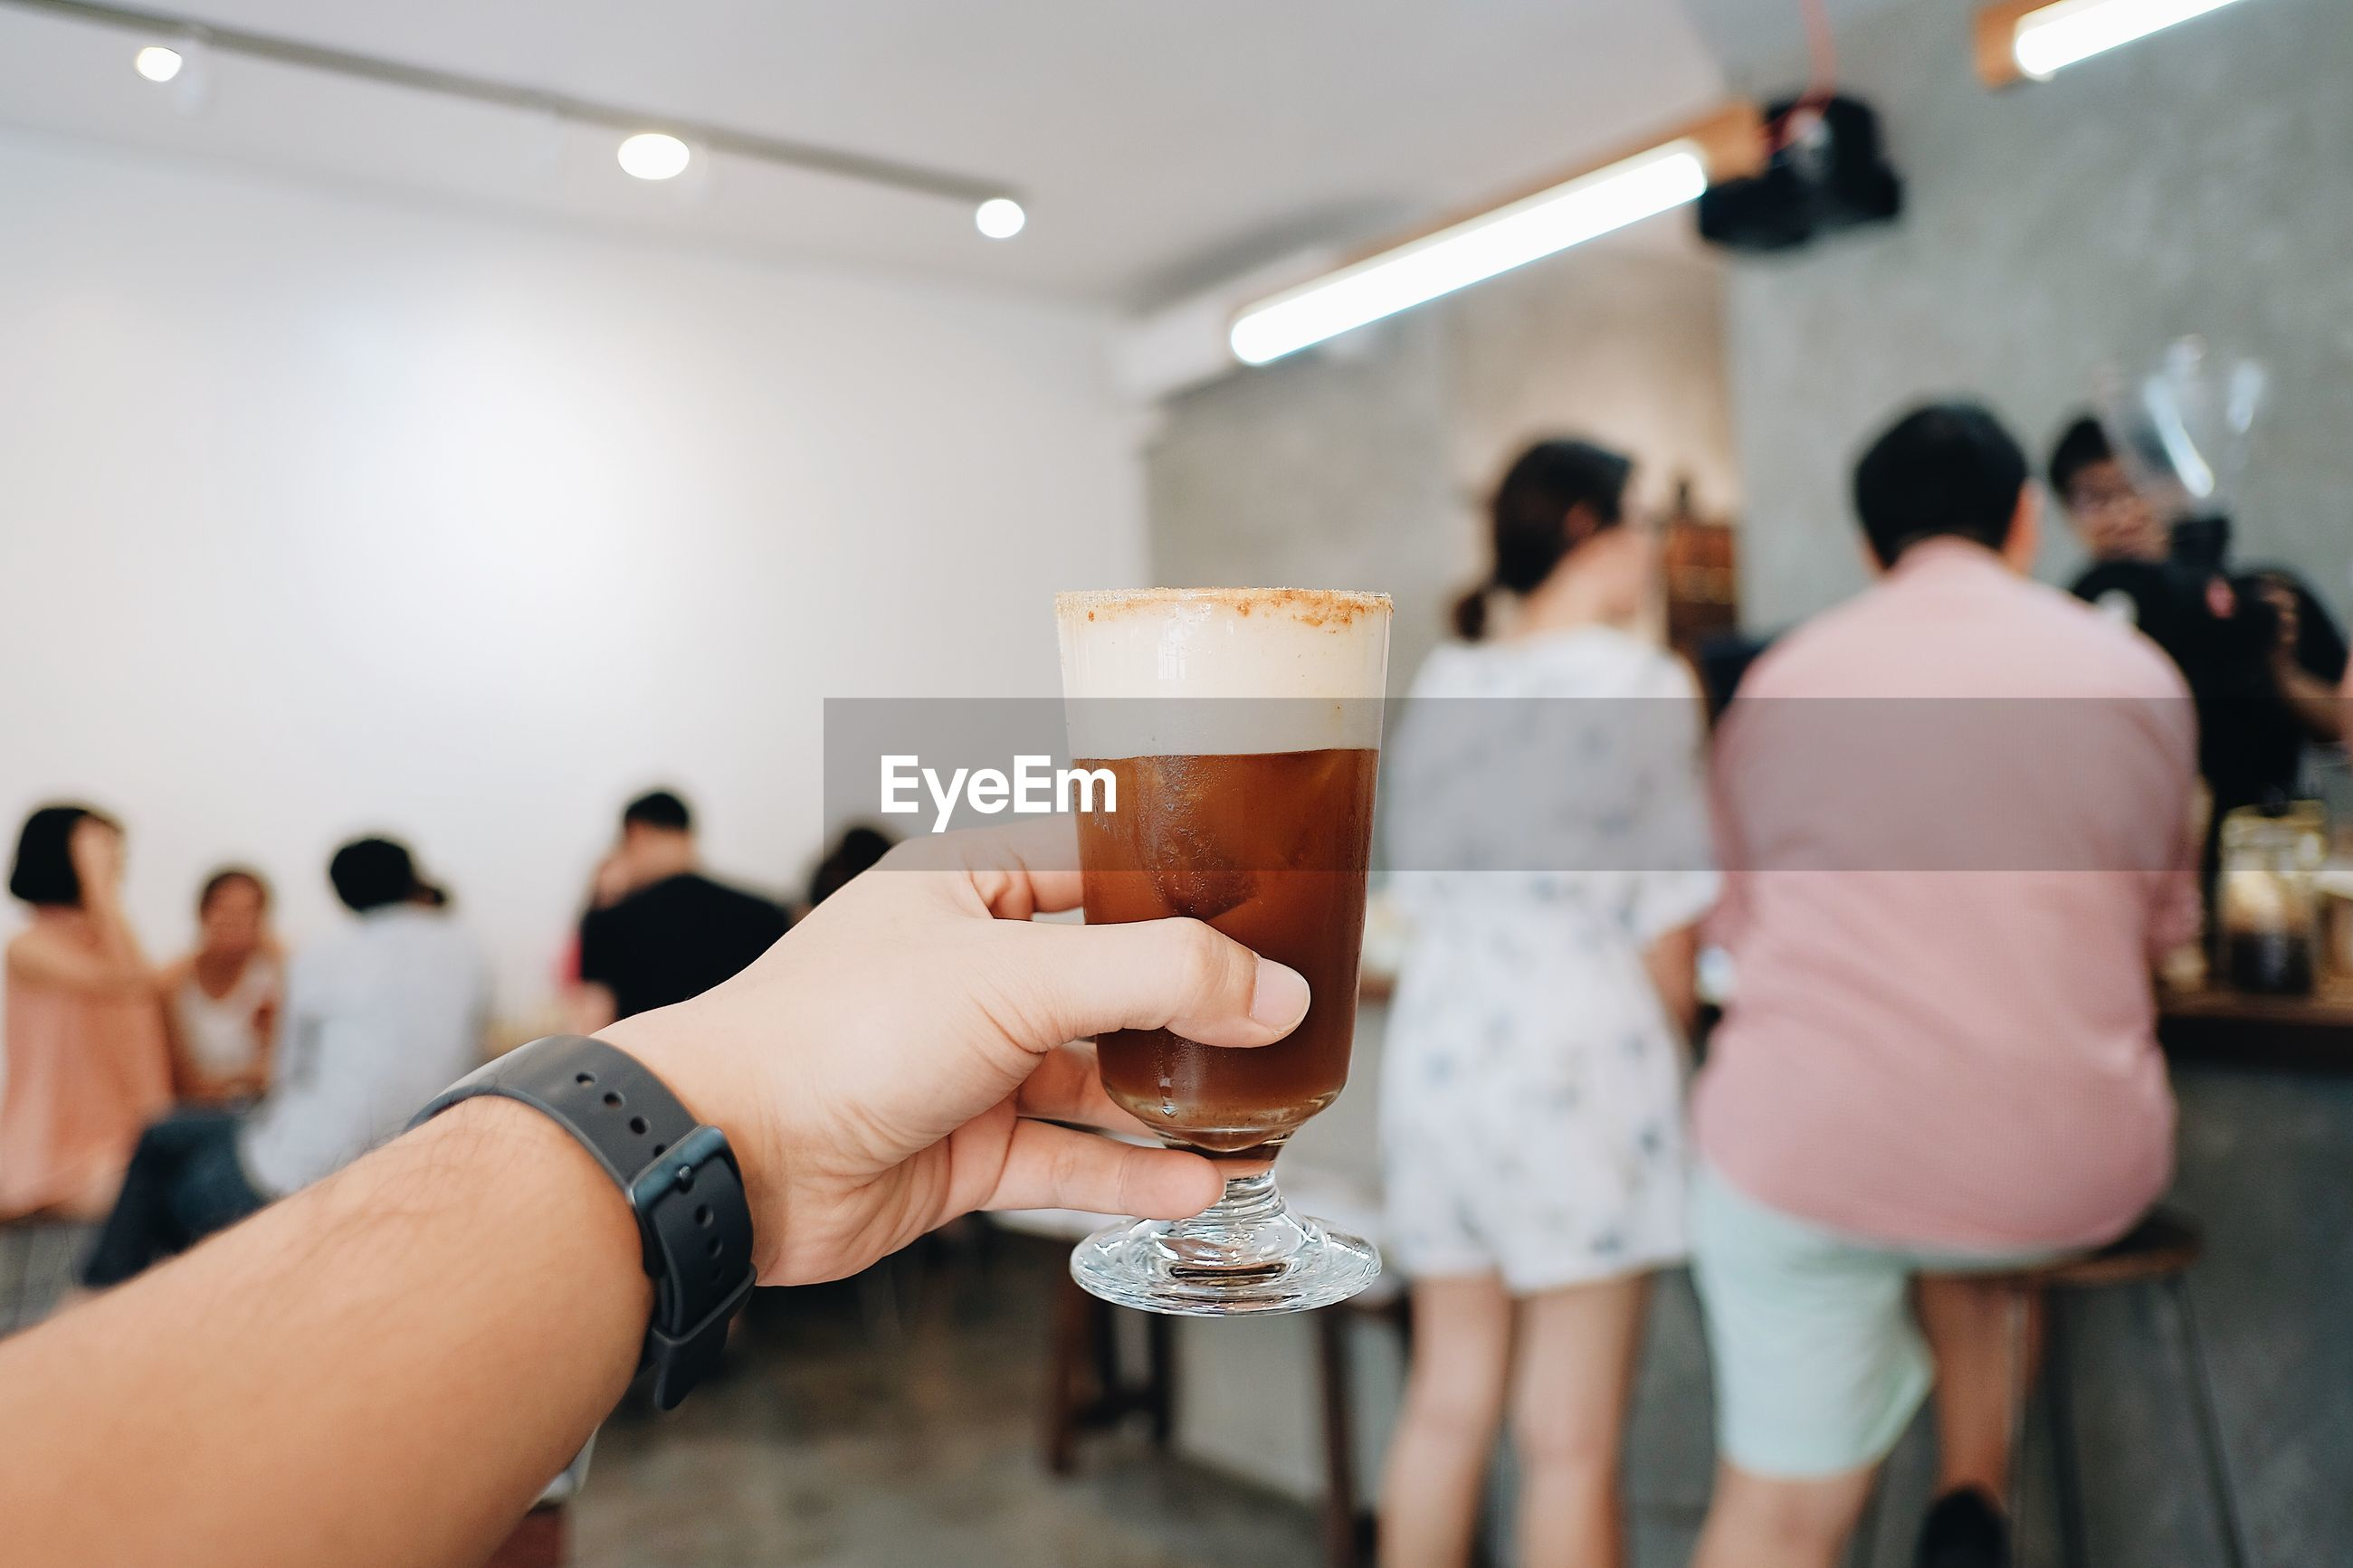 CROPPED IMAGE OF PEOPLE HOLDING GLASS OF BEER